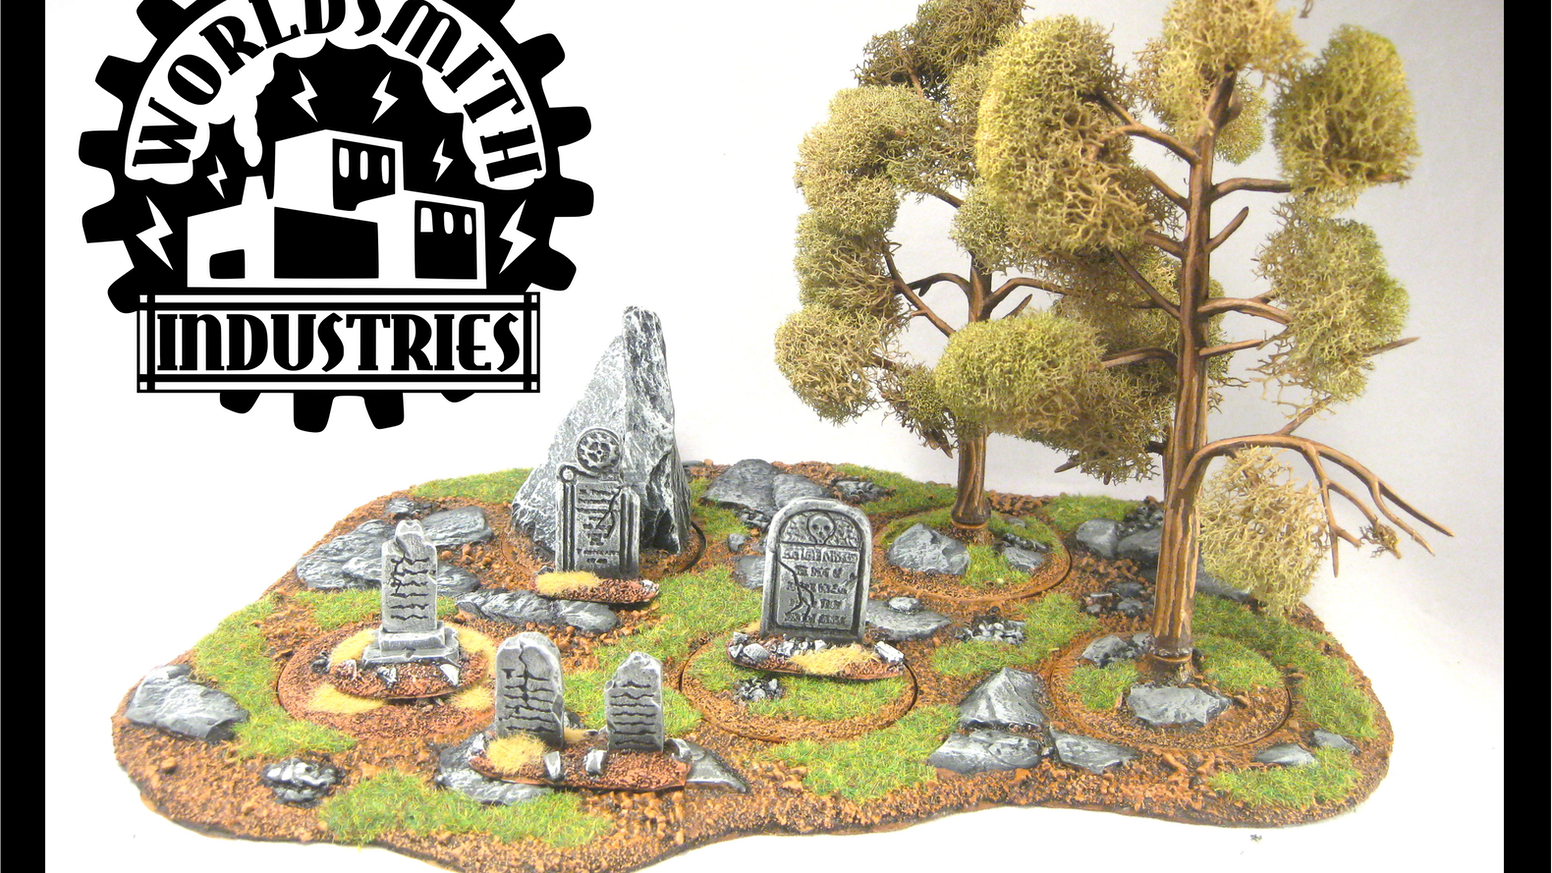 Resin Terrain for Miniature Gaming by Worldsmith Industries